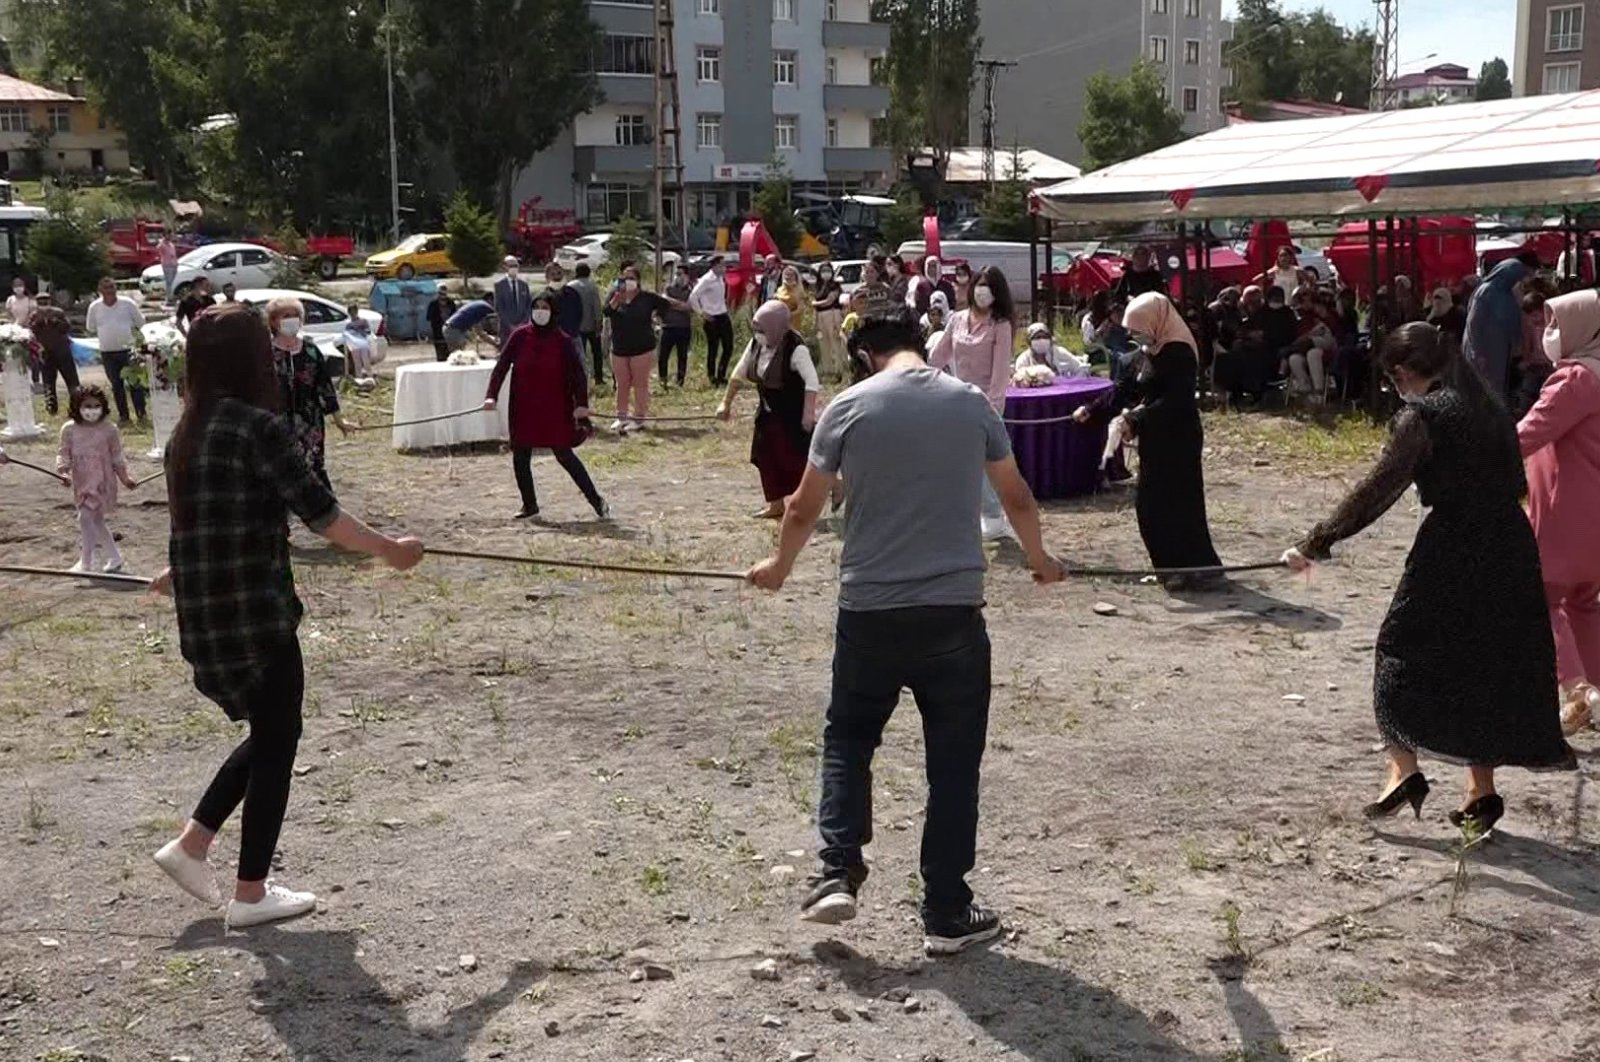 People use sticks instead of holding hands while performing folk dances due to COVID-19 measures in Ardahan, Turkey, July 19, 2020.